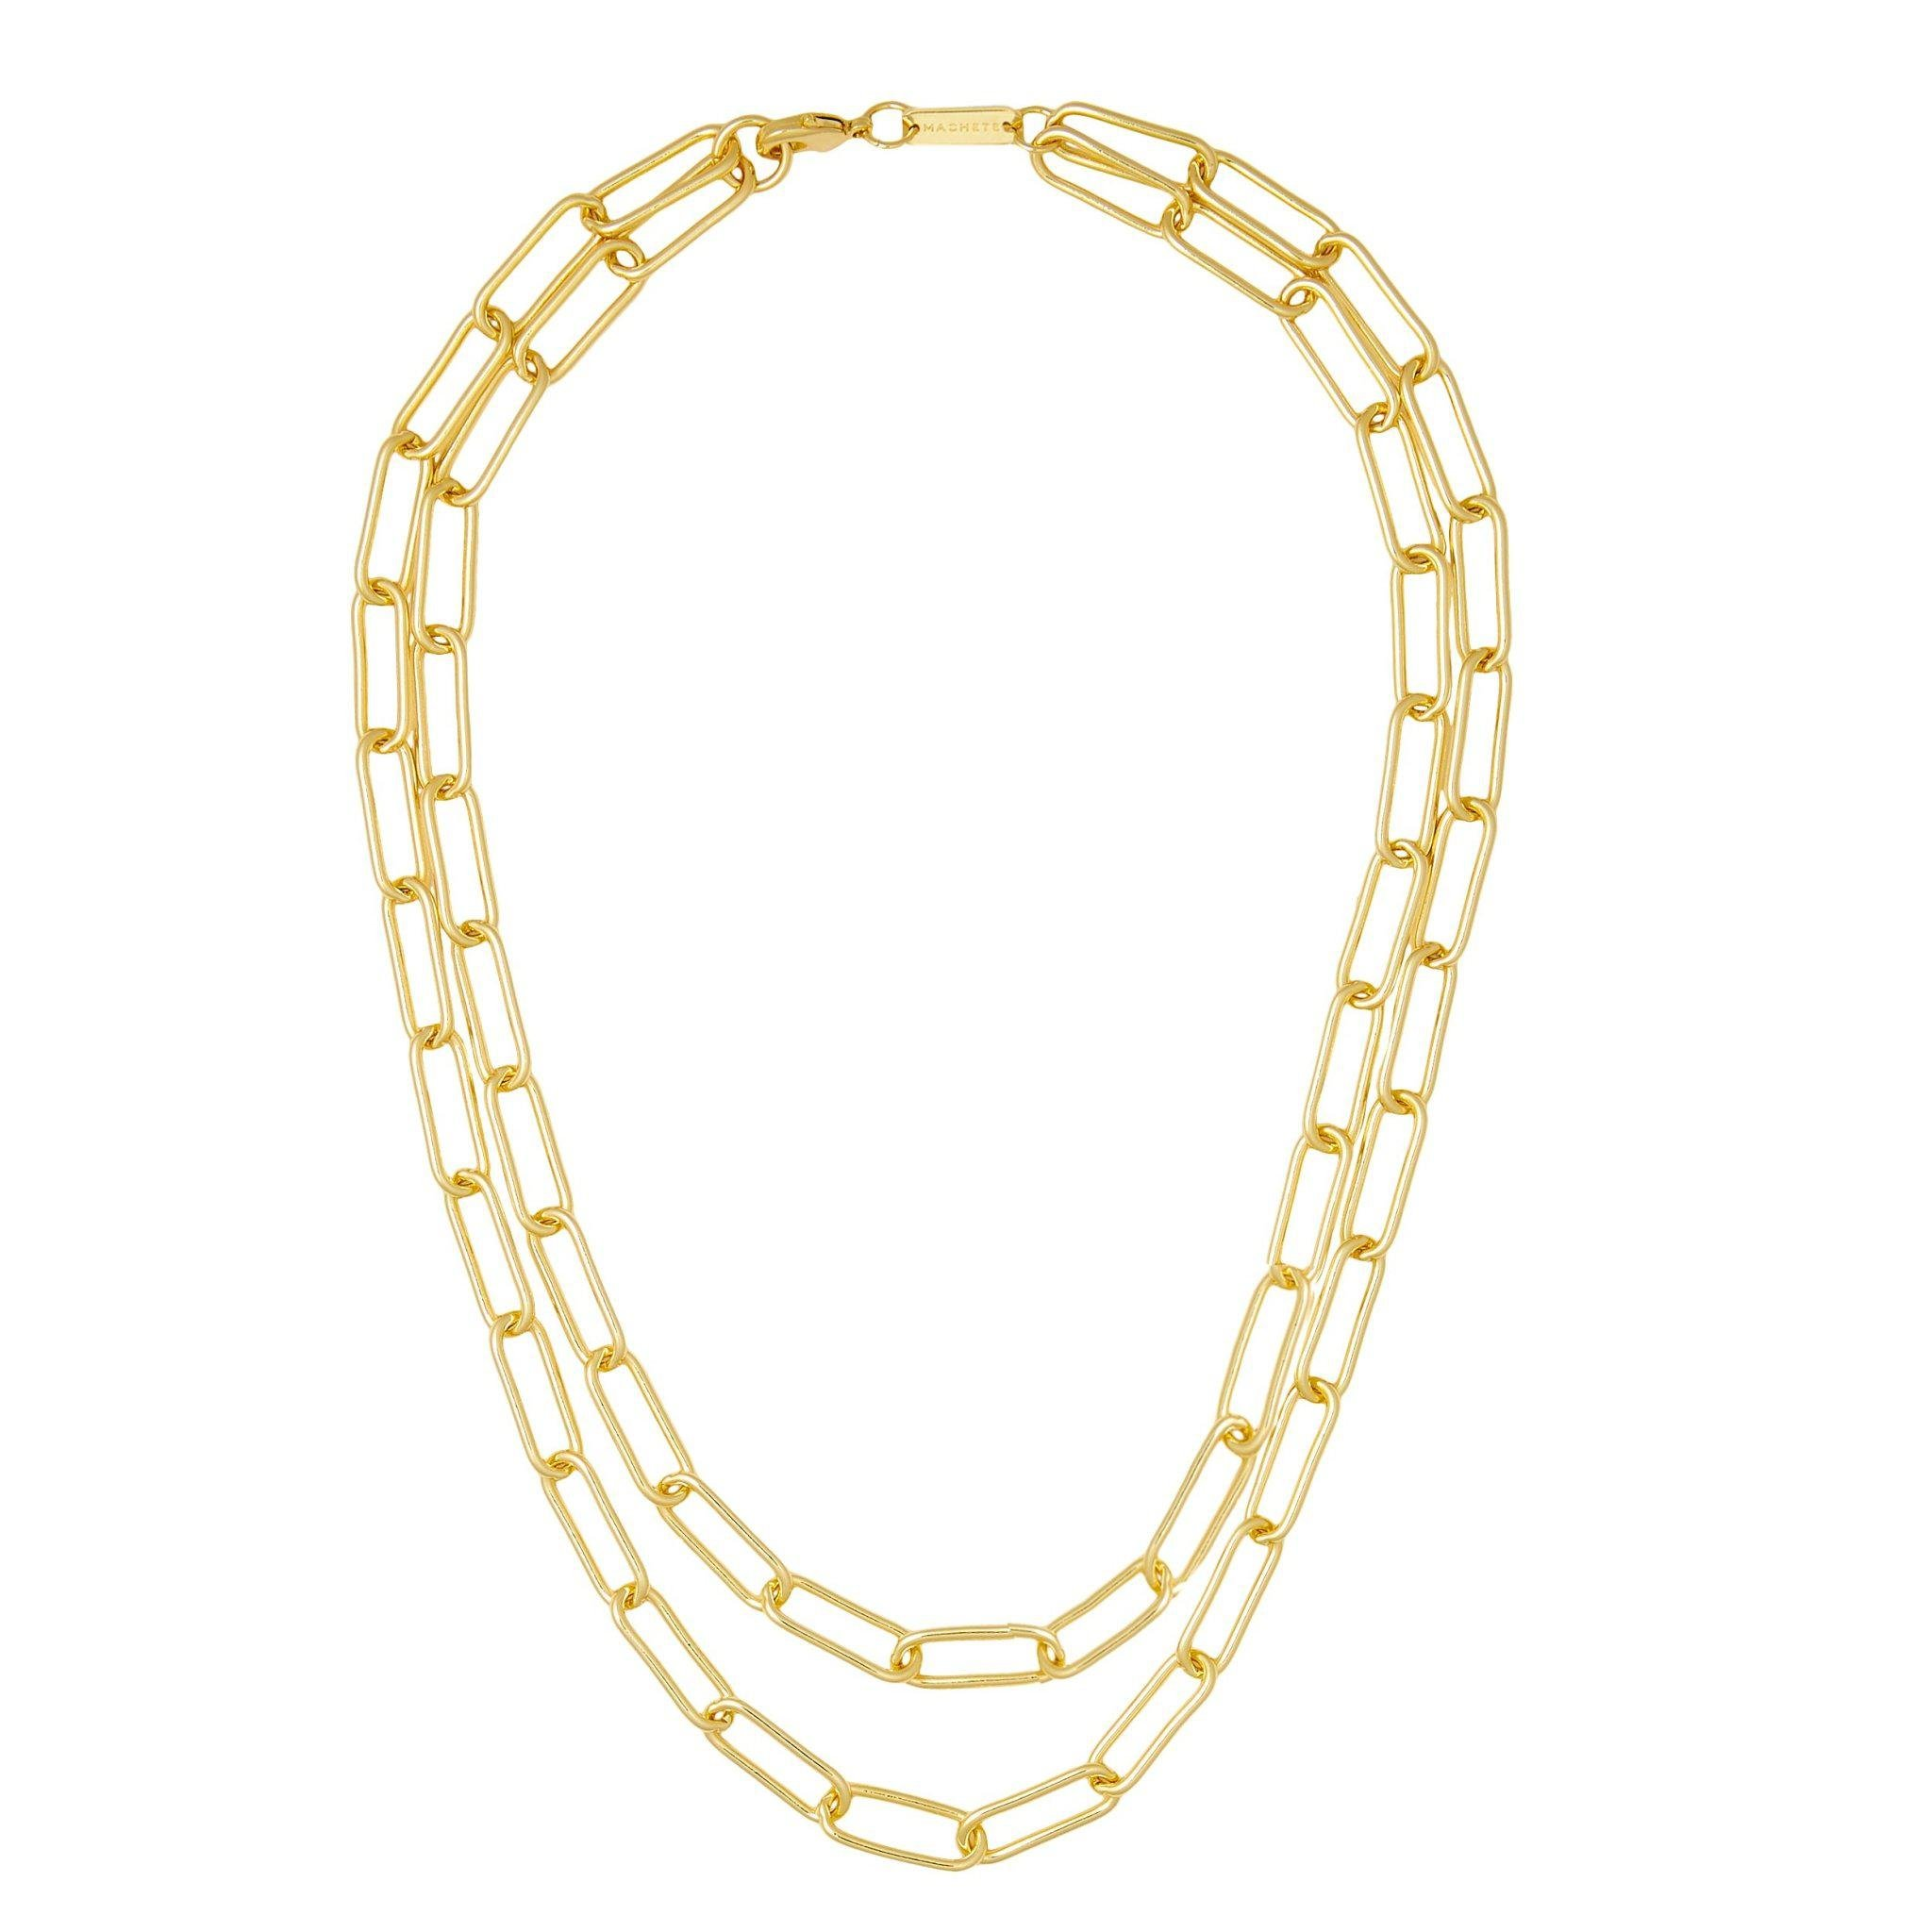 Paperclip Chain Layered Necklace in Gold